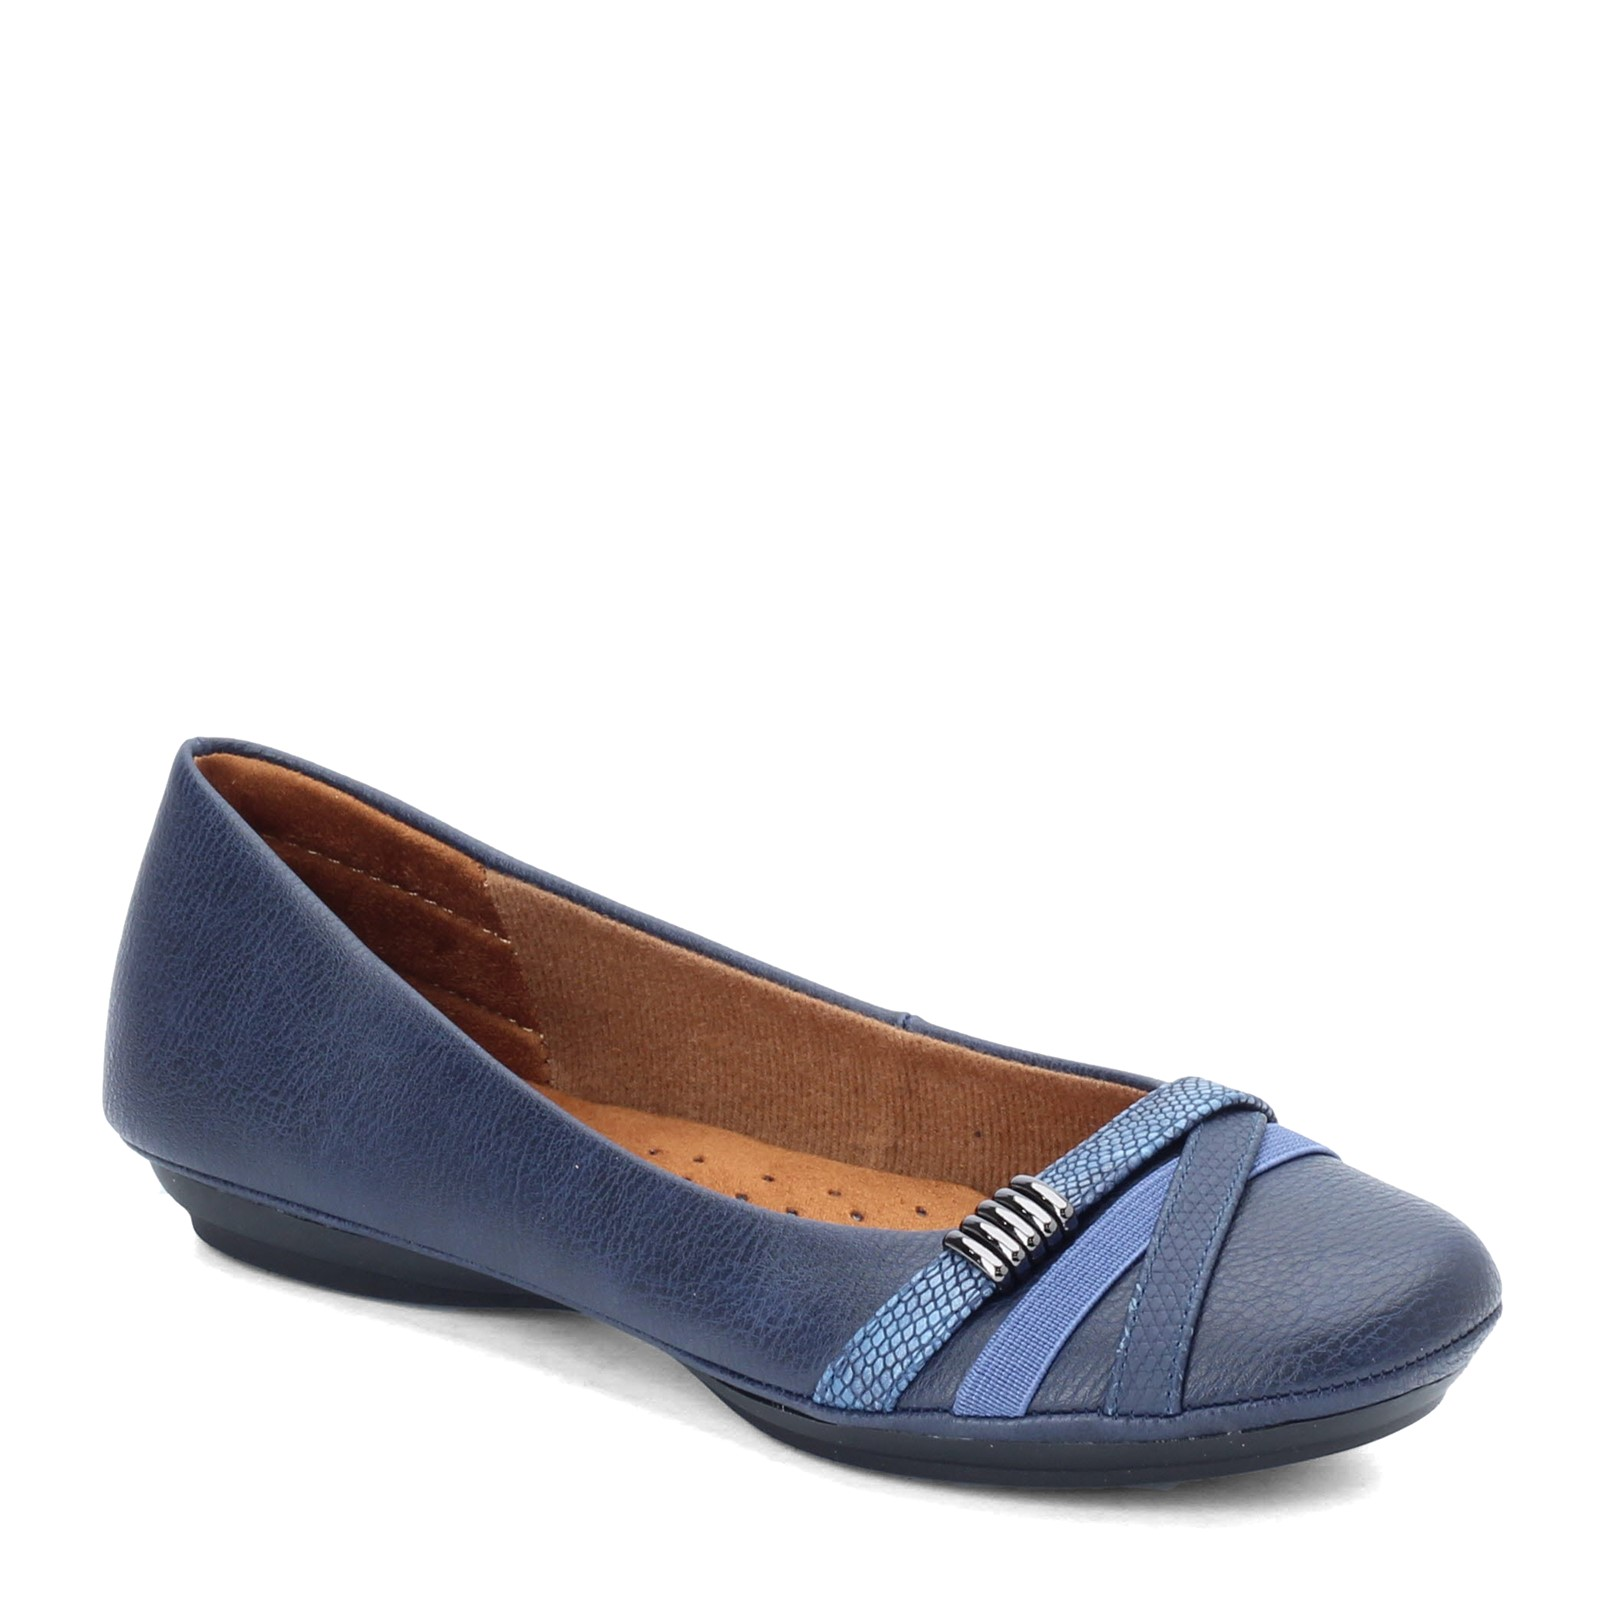 Women's Euro Soft by Sofft, Shaina Slip on Flats